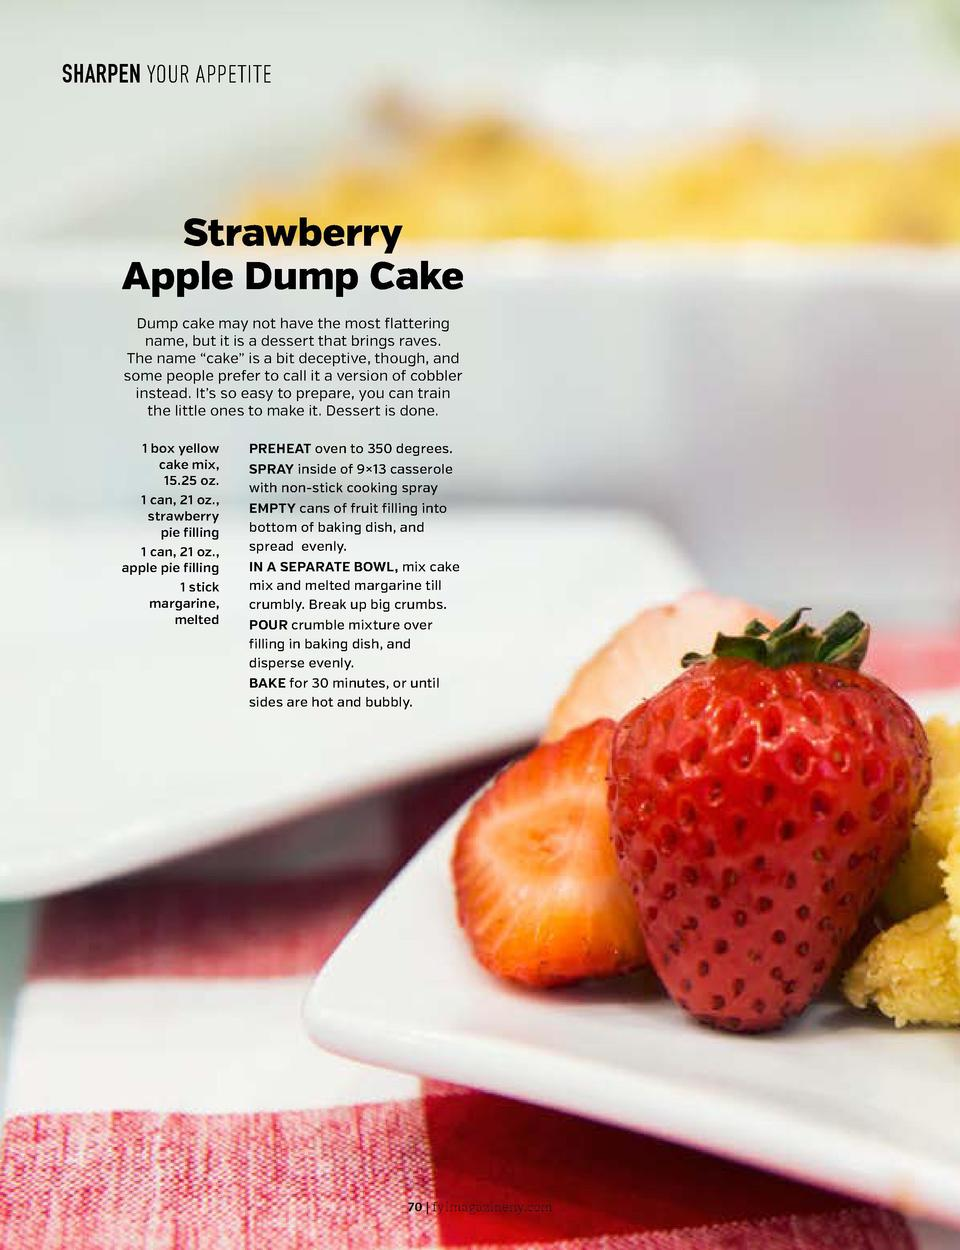 SHARPEN YOUR APPETITE  SHARPEN YOUR APPETITE  Strawberry Apple Dump Cake Dump cake may not have the most flattering name, ...